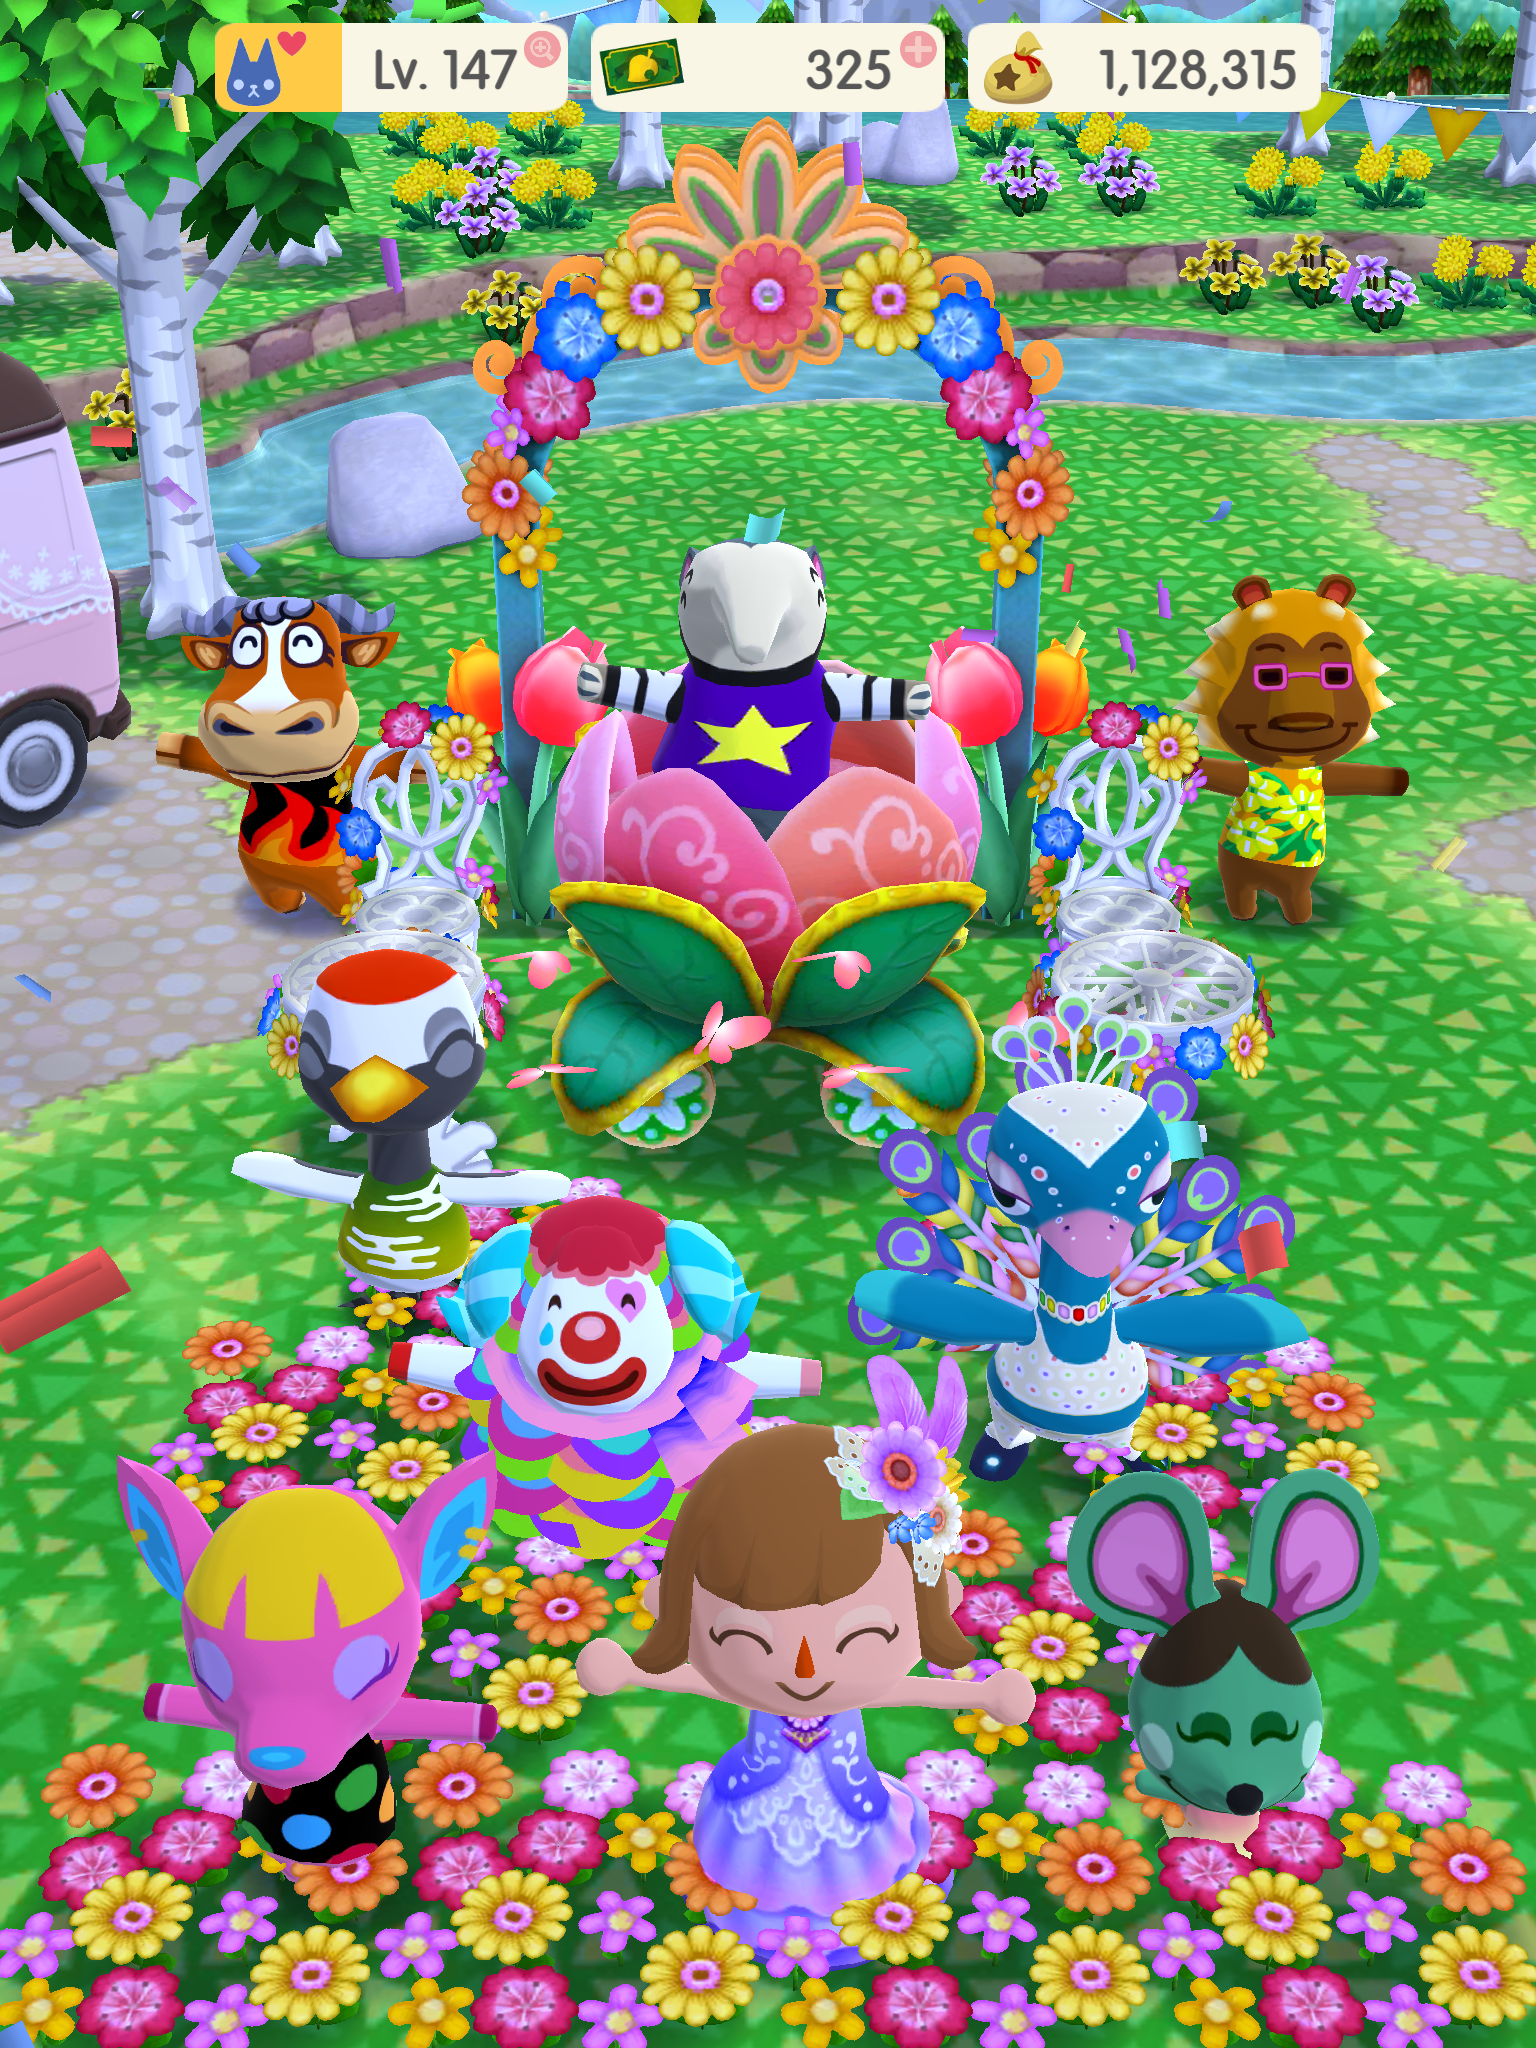 Pin by Andra Dill on Animal crossing pocket camp Animal